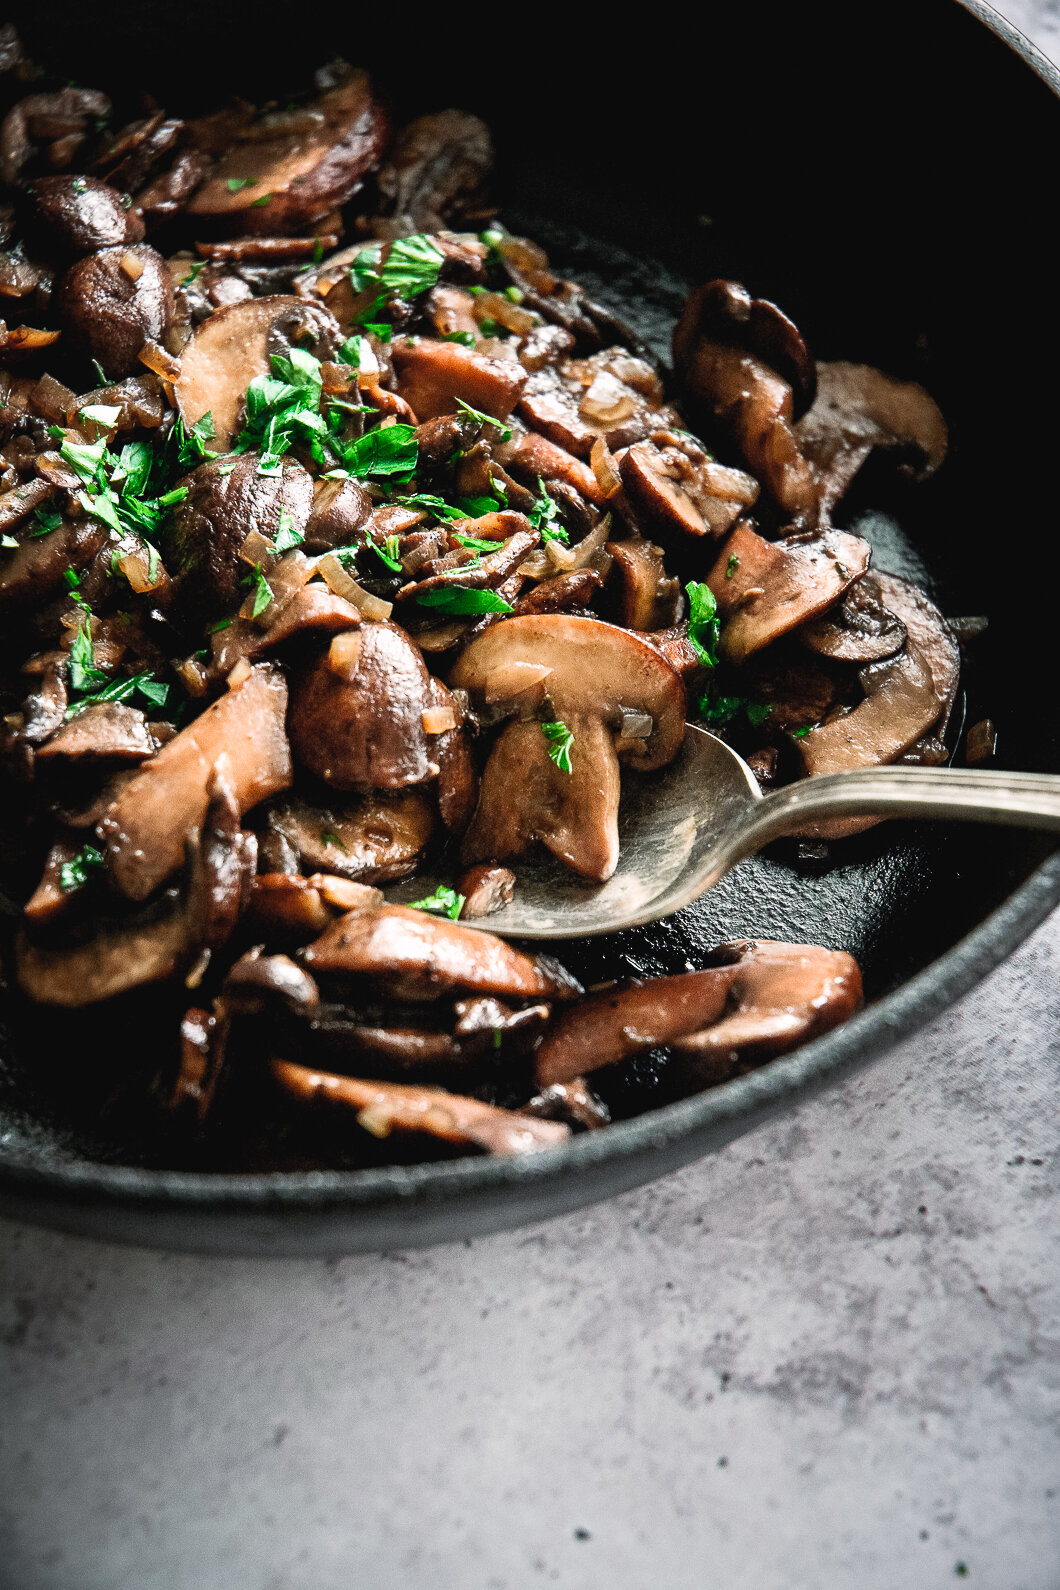 Sautéed mushrooms in pan with spoon